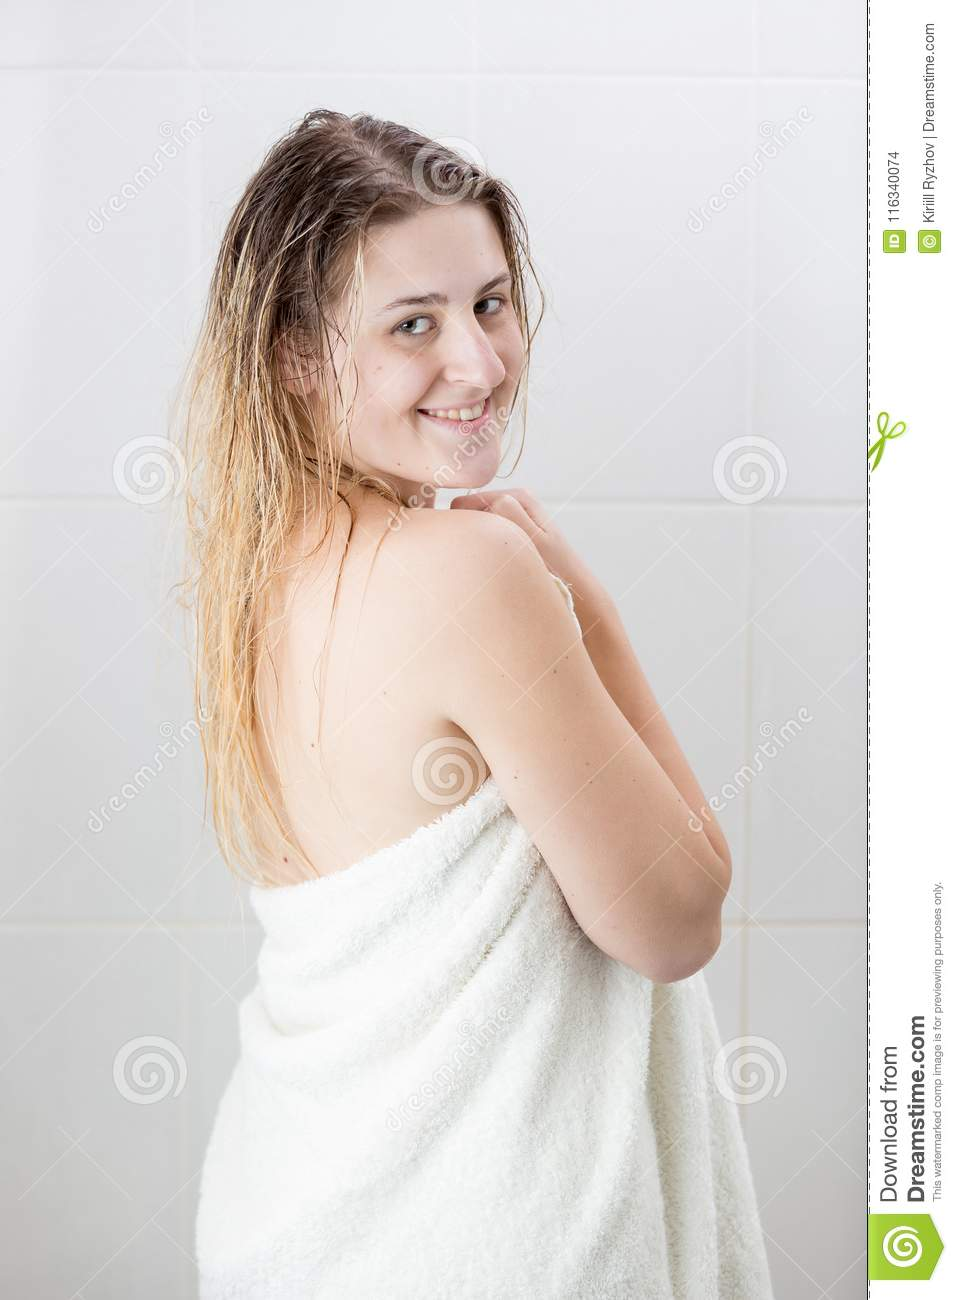 Woman In Shower And Bathroom Not Nude Stock Photos & Woman